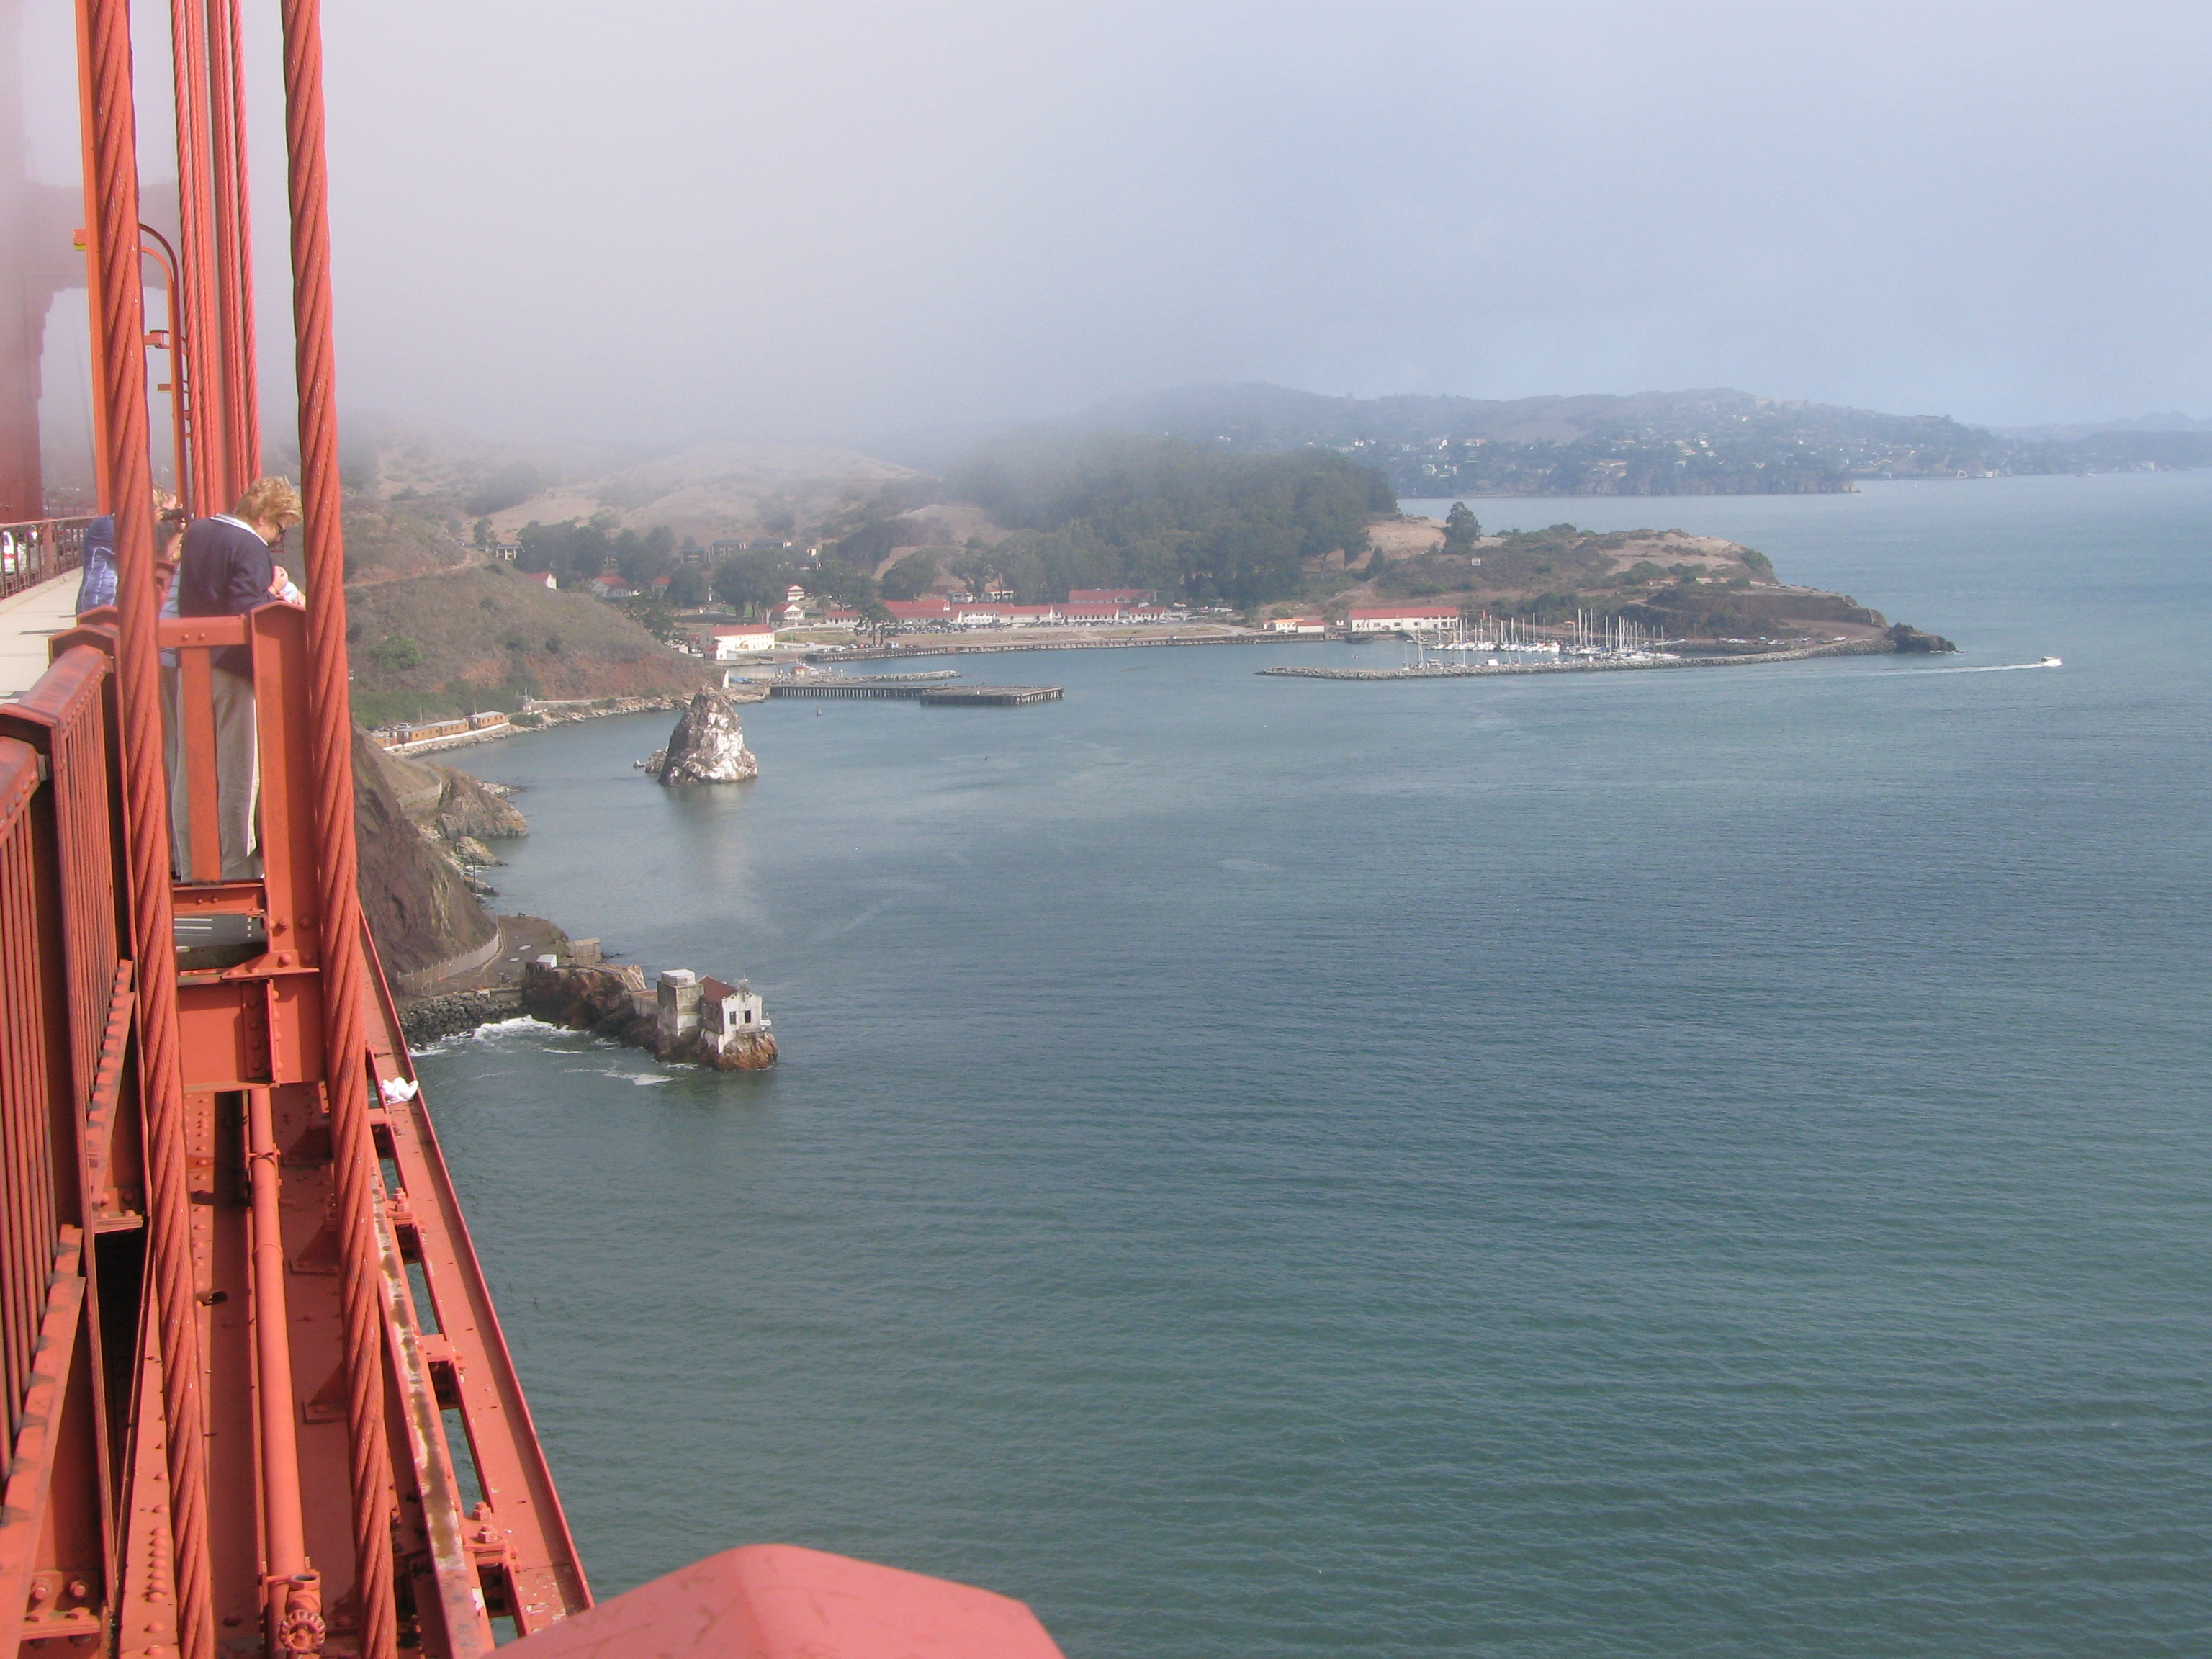 A view from the Golden Gate Bridge to Sausalito